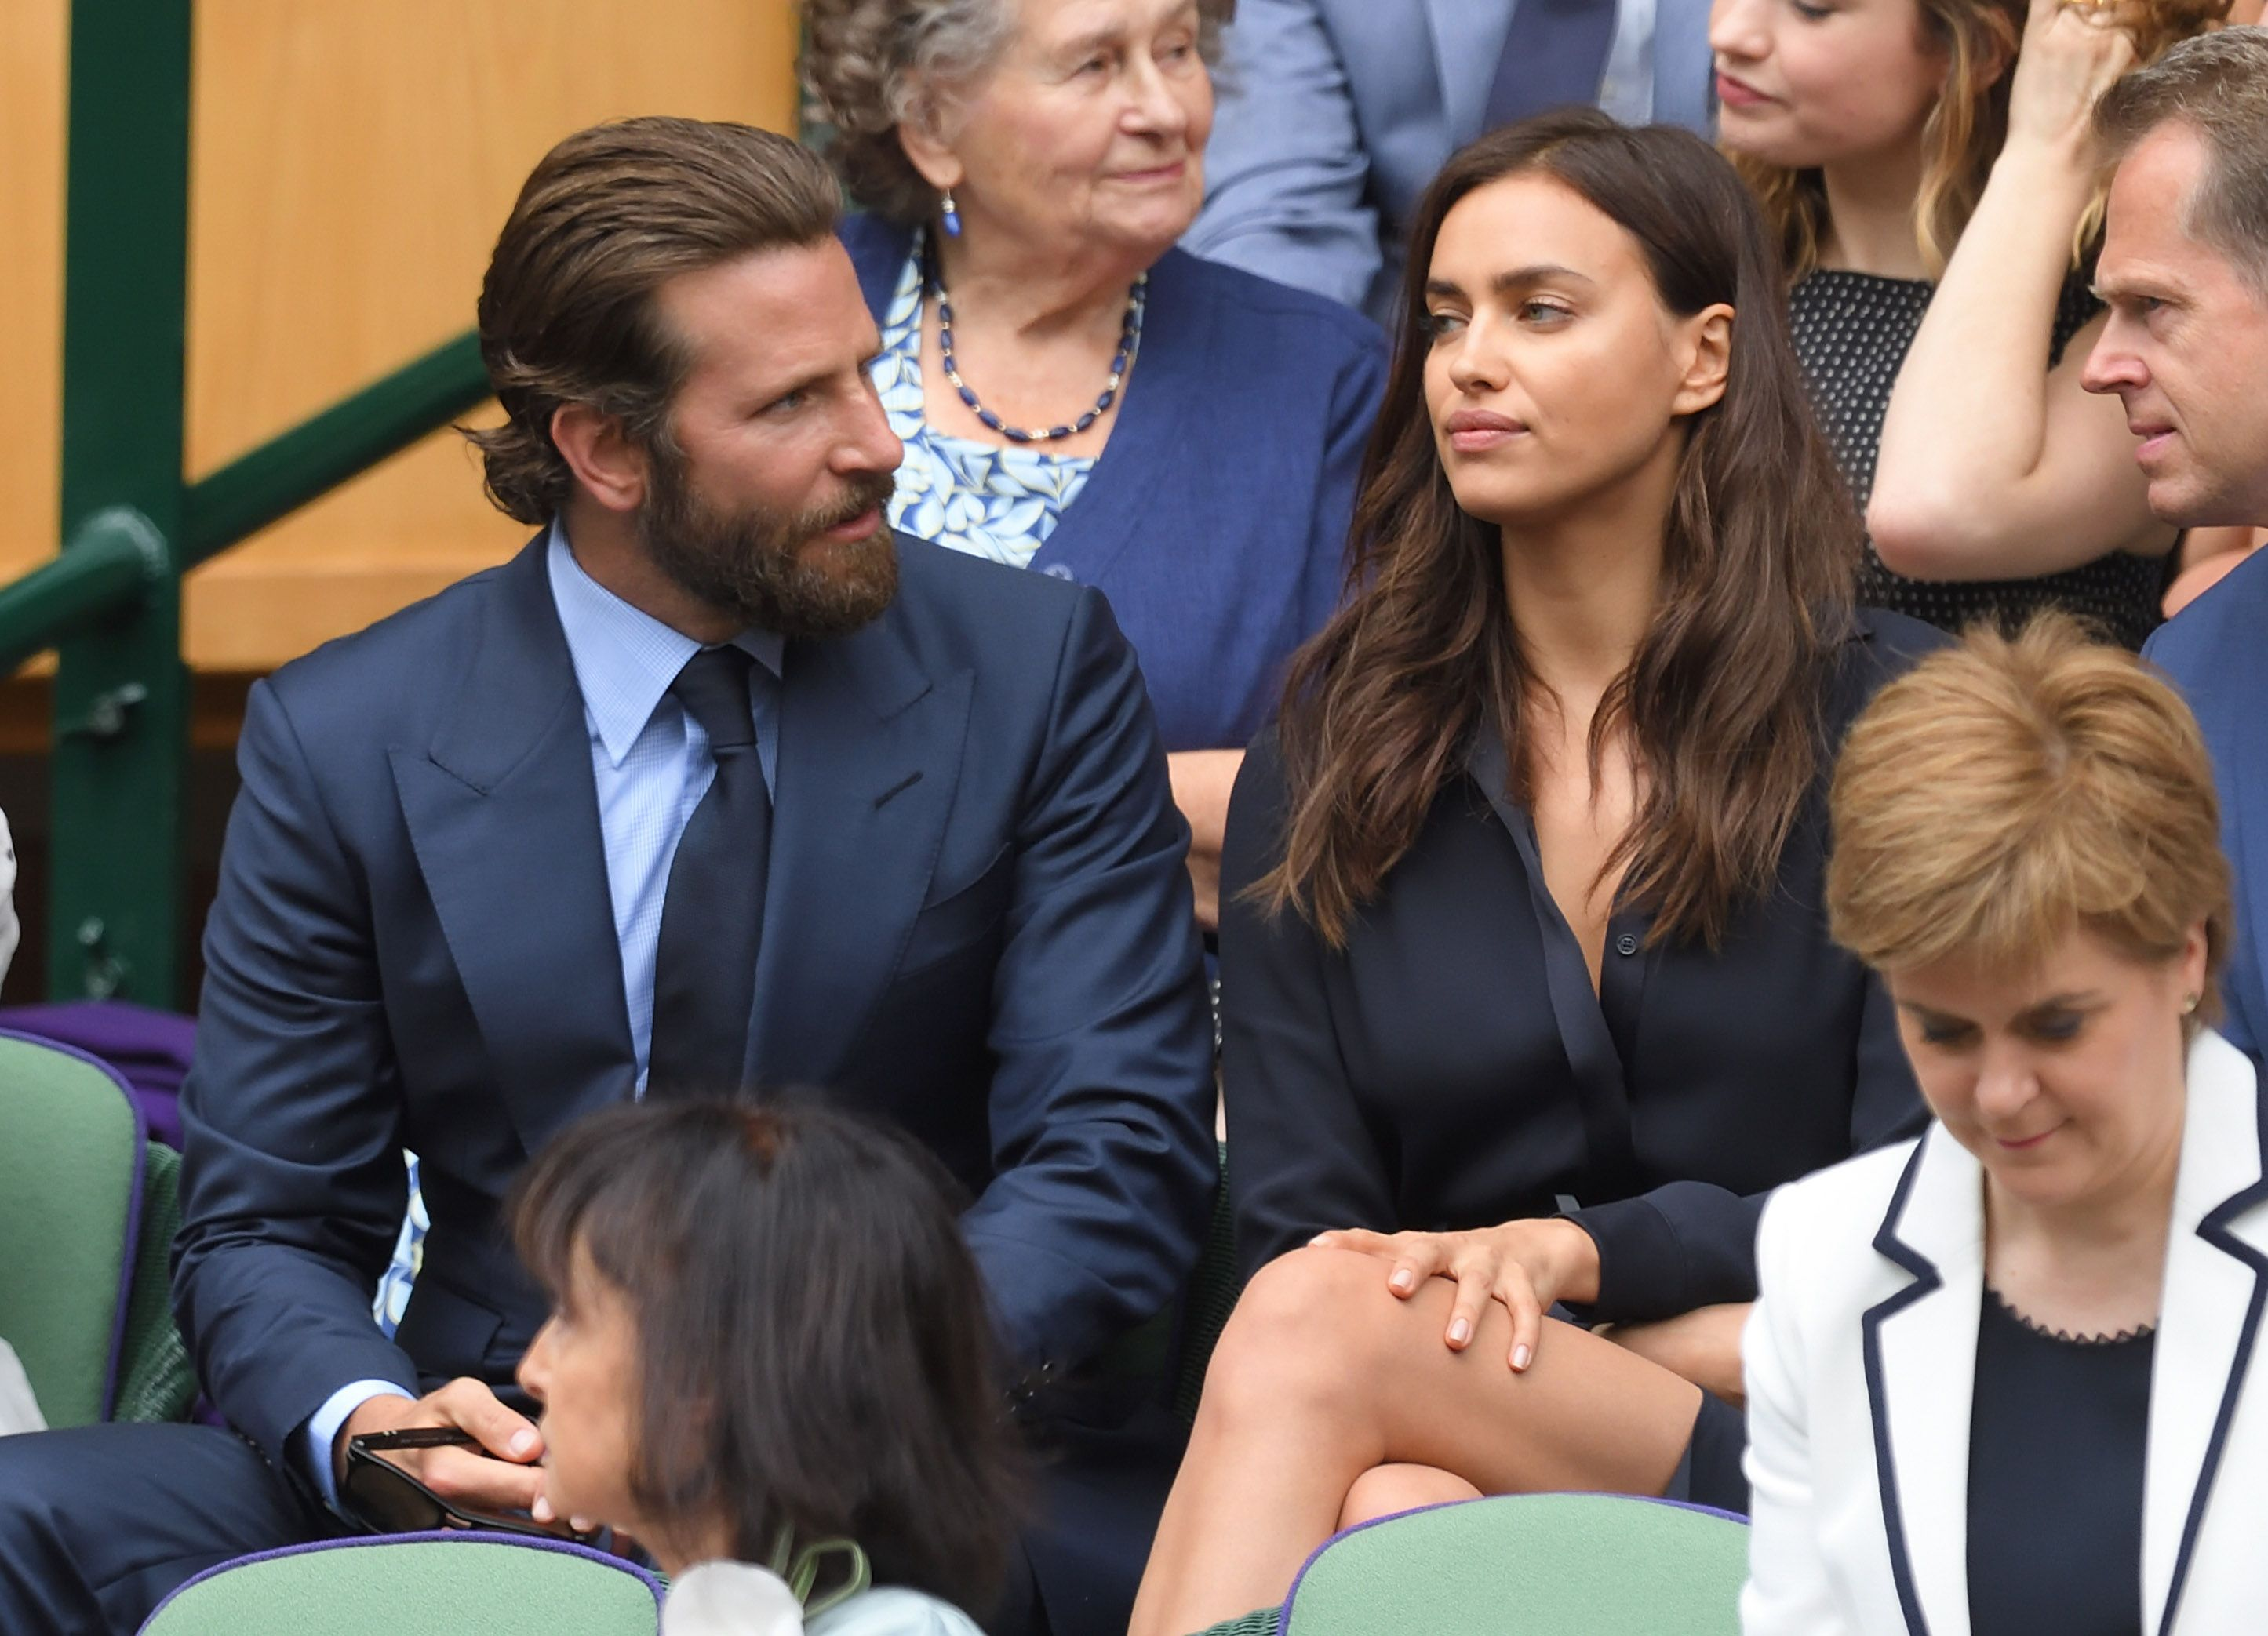 Bradley Cooper and Irina Shayk Tried to Make Things Work for Their